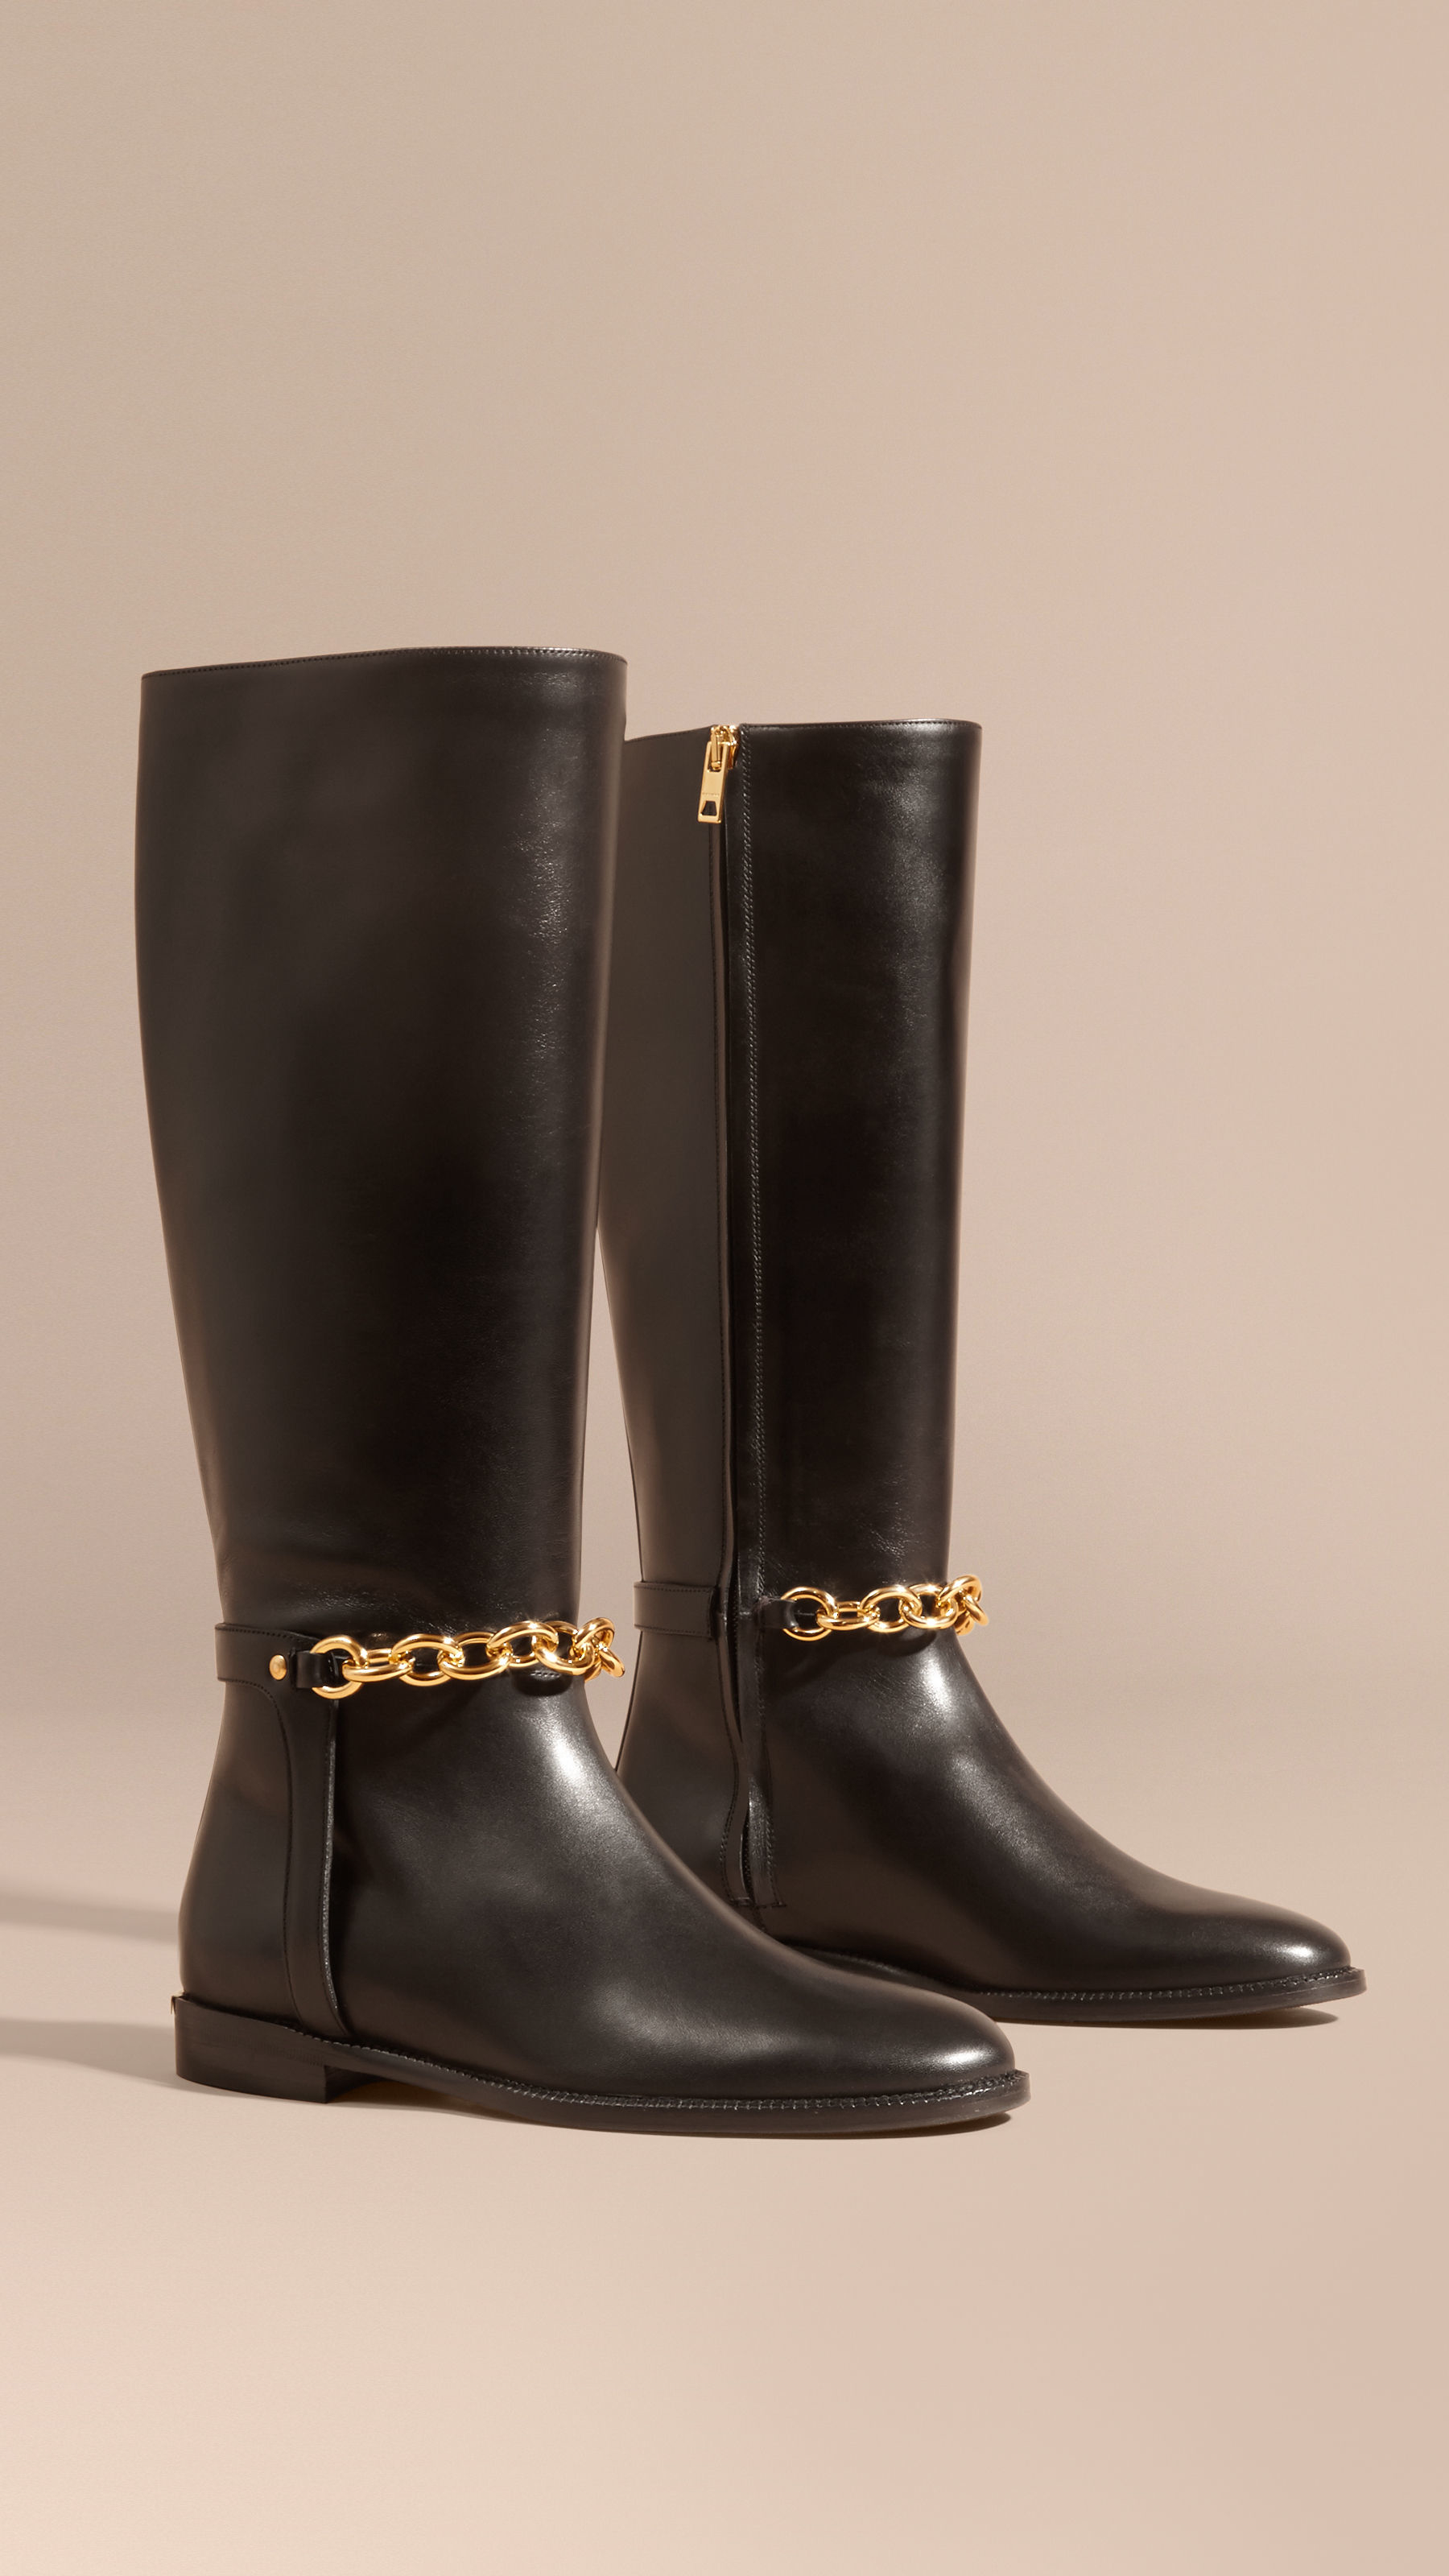 Burberry Chain Detail Leather Riding Boots in Black